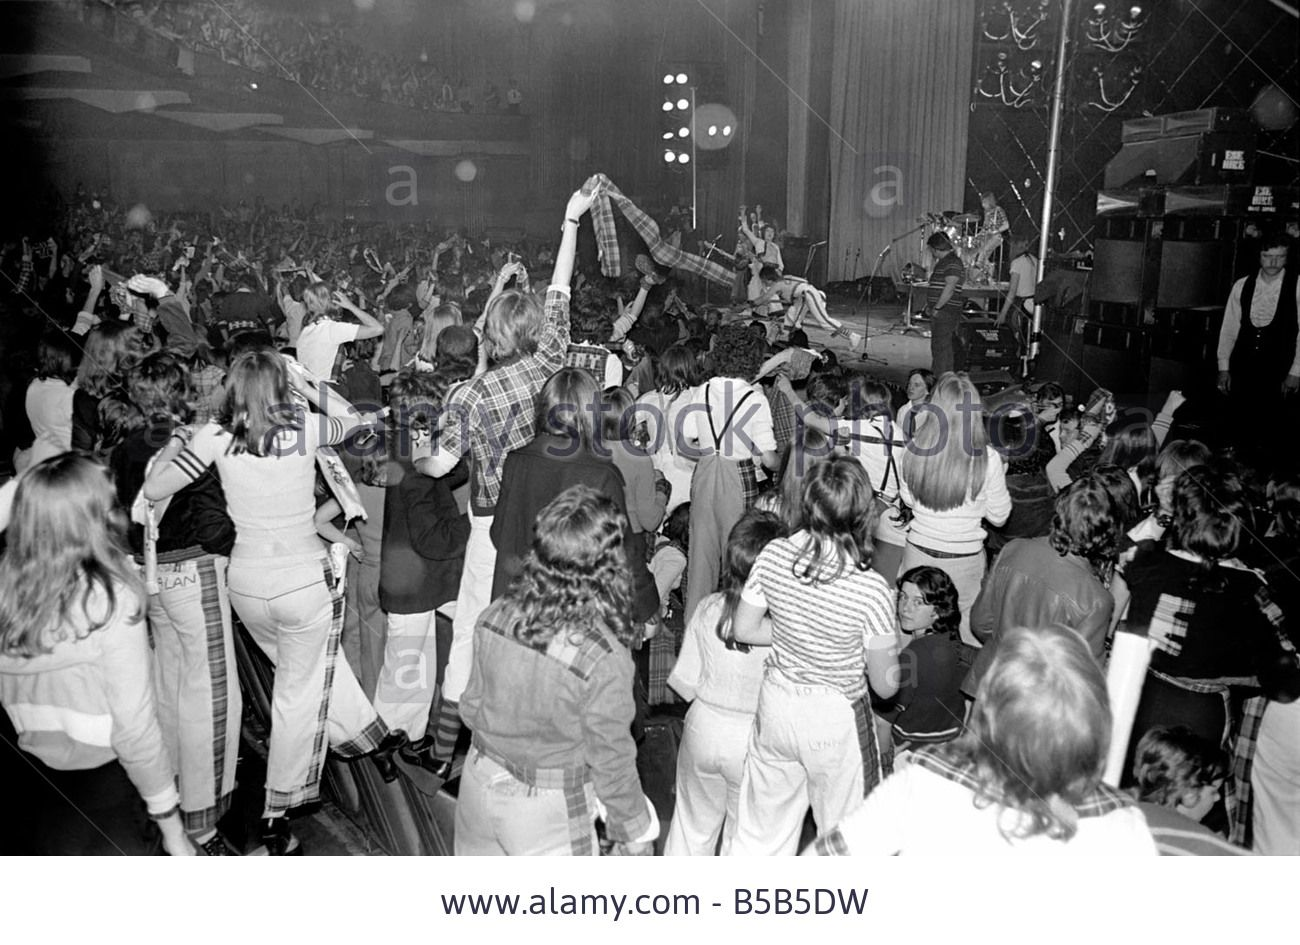 Fans Cheer As The Bay City Rollers Perform On Stage At Cardiff Stock Photo, Picture And Royalty Free Image. Pic. 20529429